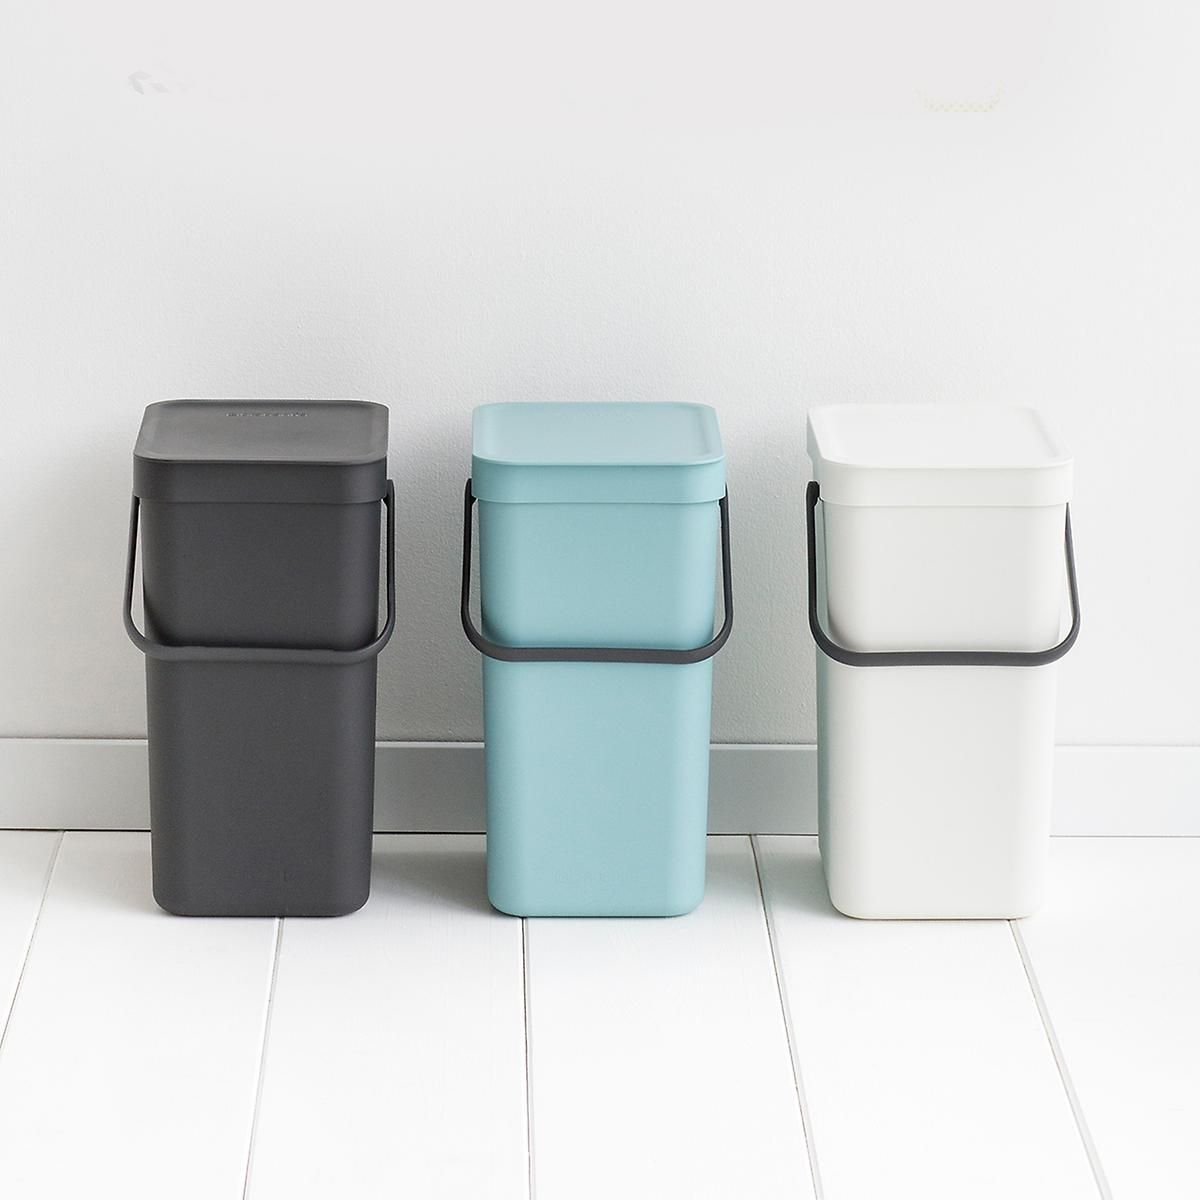 Brabantia 378706 Touch Bin 50 Liter Fingerprint Proof Waste Bin Brushed Stainless Steel For Only 115 85 You S Brabantia Recycle Trash Trash And Recycling Bin